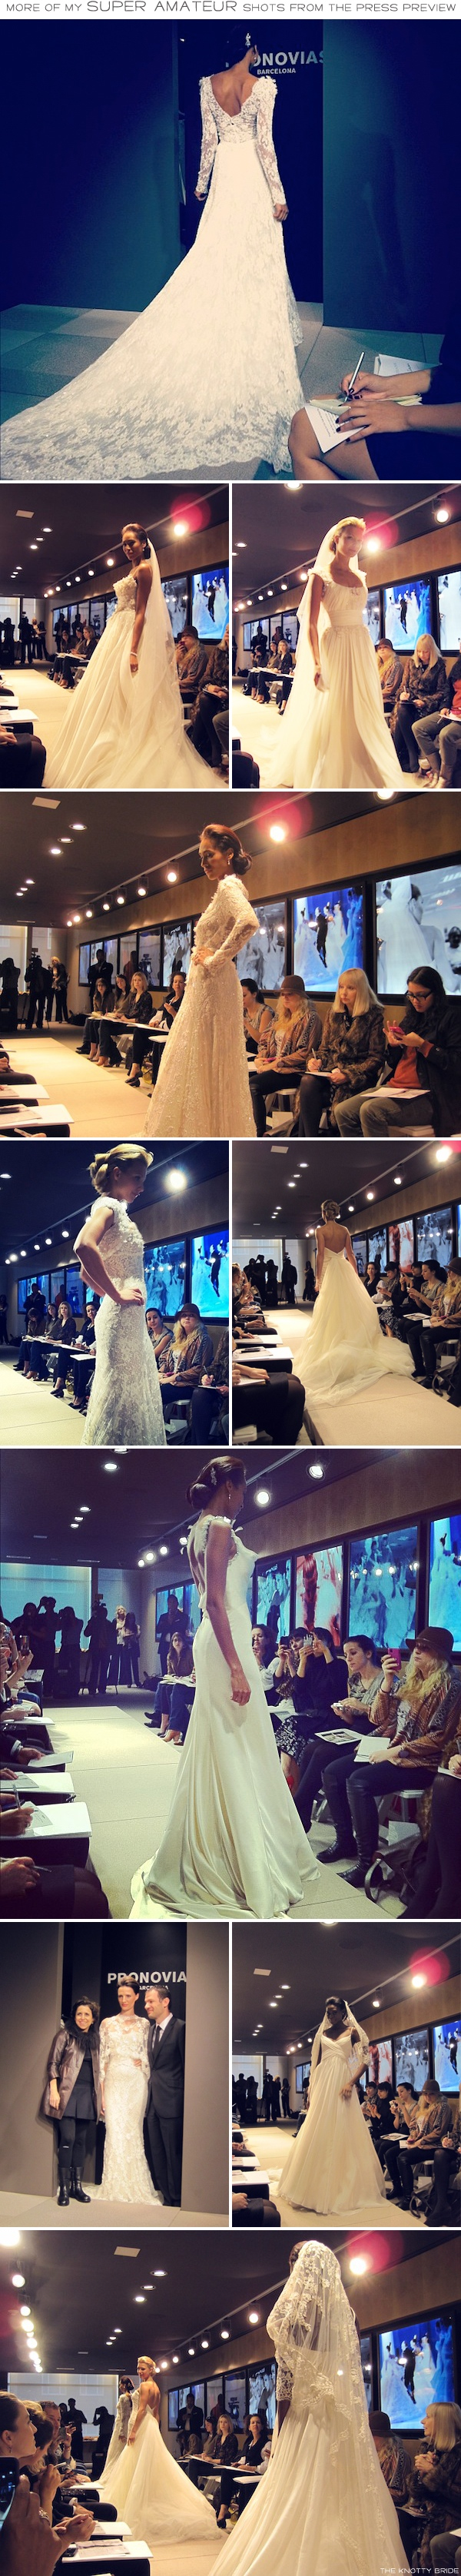 RUFFLES, TULLE, LACE, SATIN AND CHIFFON | PRETTIEST DRESSES IN THE LAND 2012 | No, seriously. These are the prettiest ones. [Bridal Market Coverage] | The Knotty Bride™ Wedding Blog + Wedding Vendor Guide